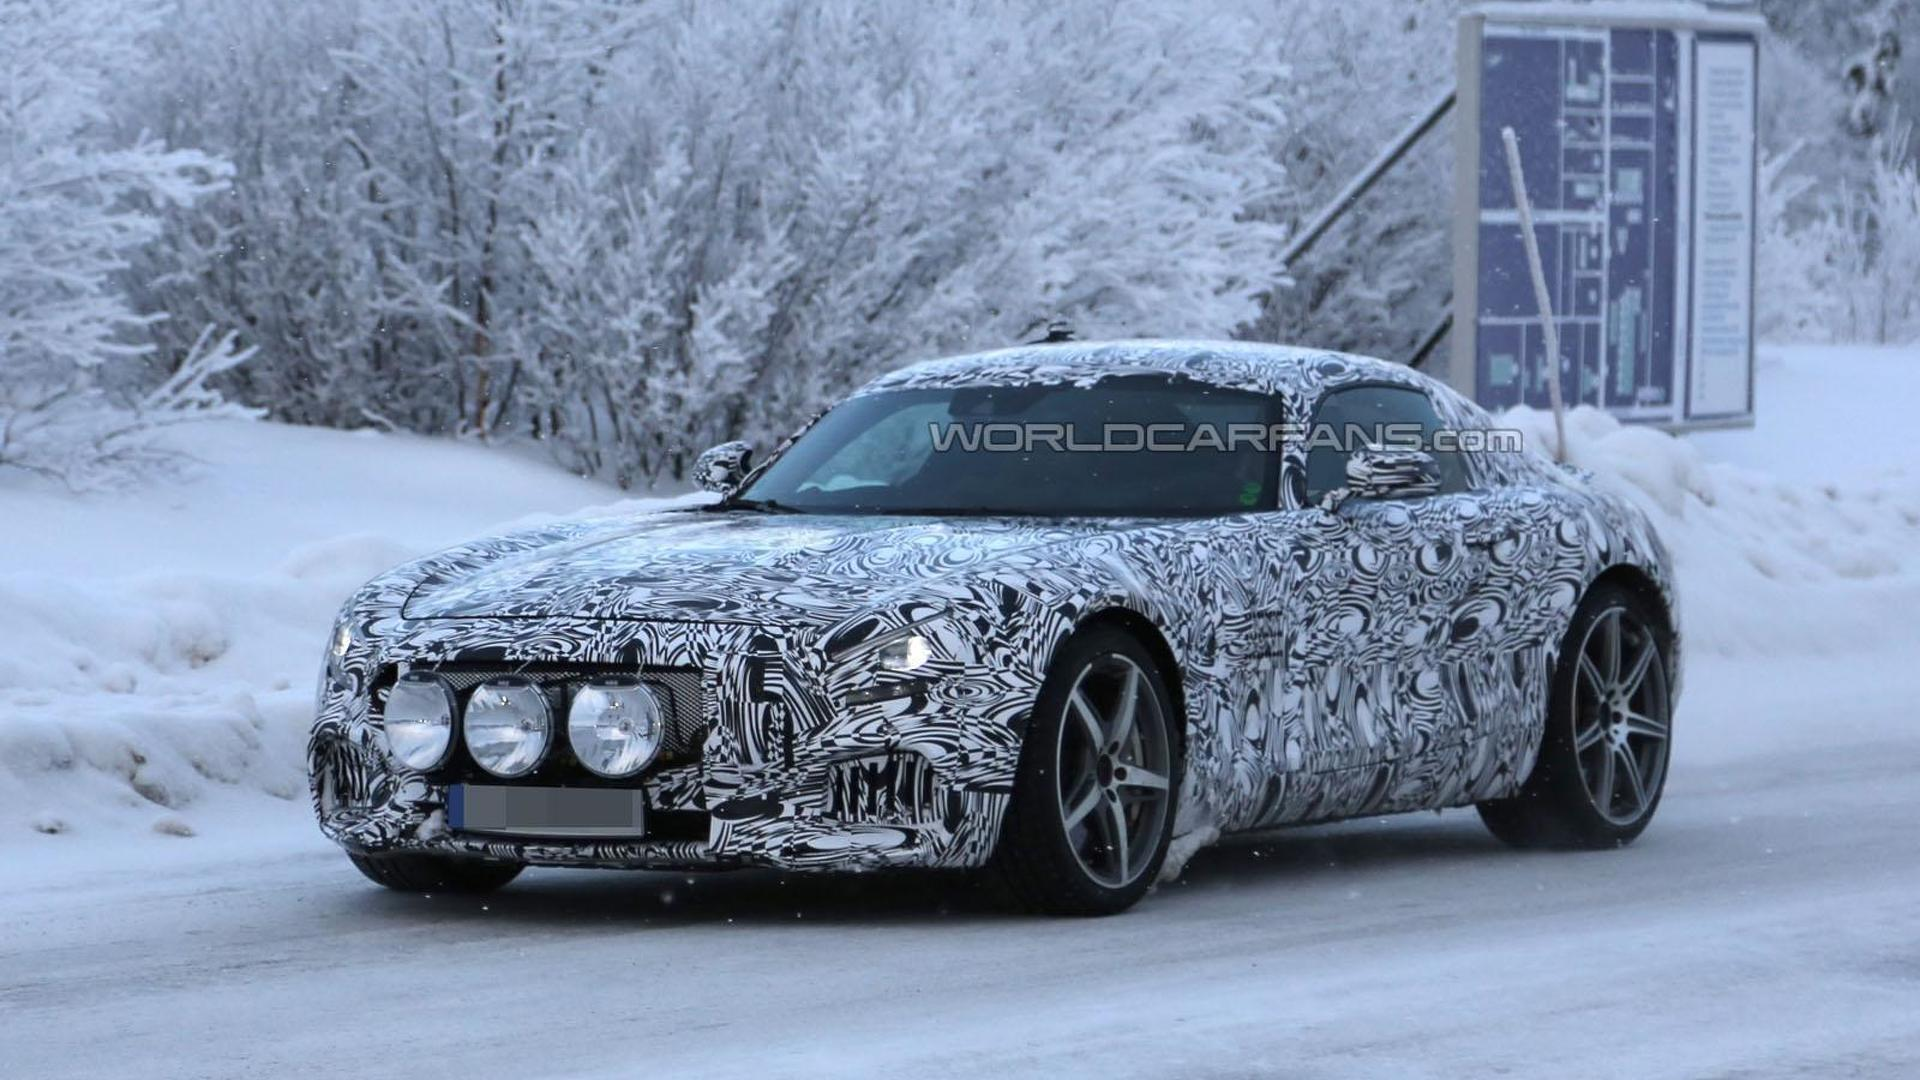 Mercedes confirms plans to introduce an all-new sports car later this year